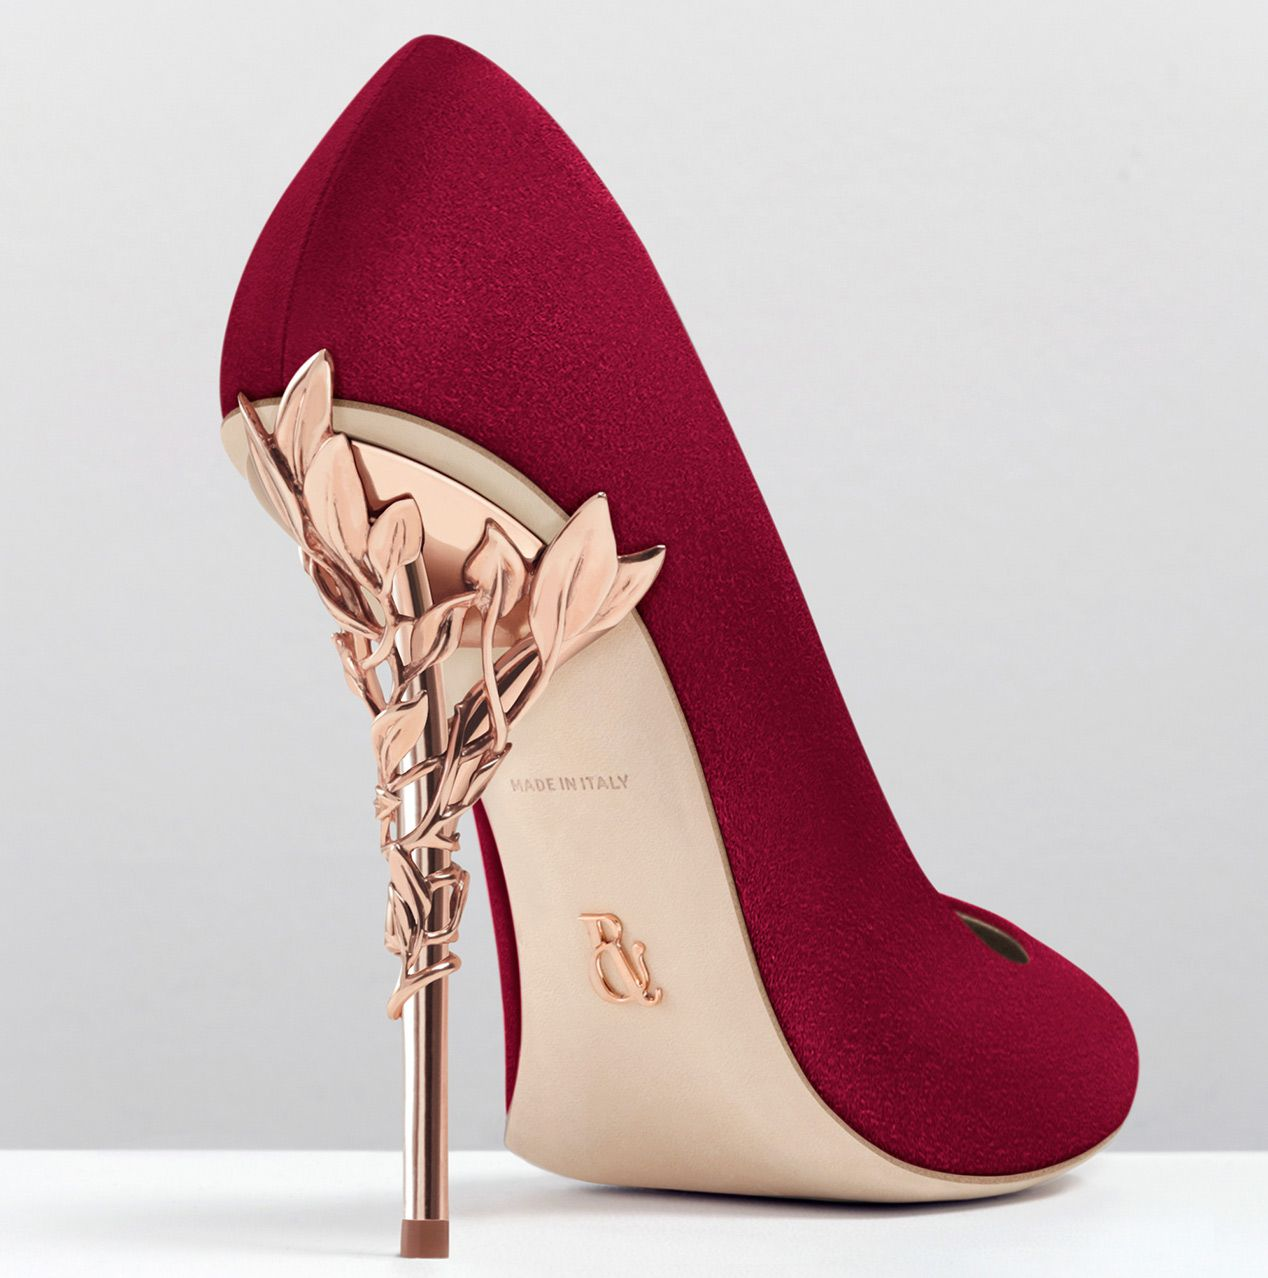 17393e68d69 Fandango colour Suede Rose gold colour leaves 12cm heel Leather outsole  Made in Italy